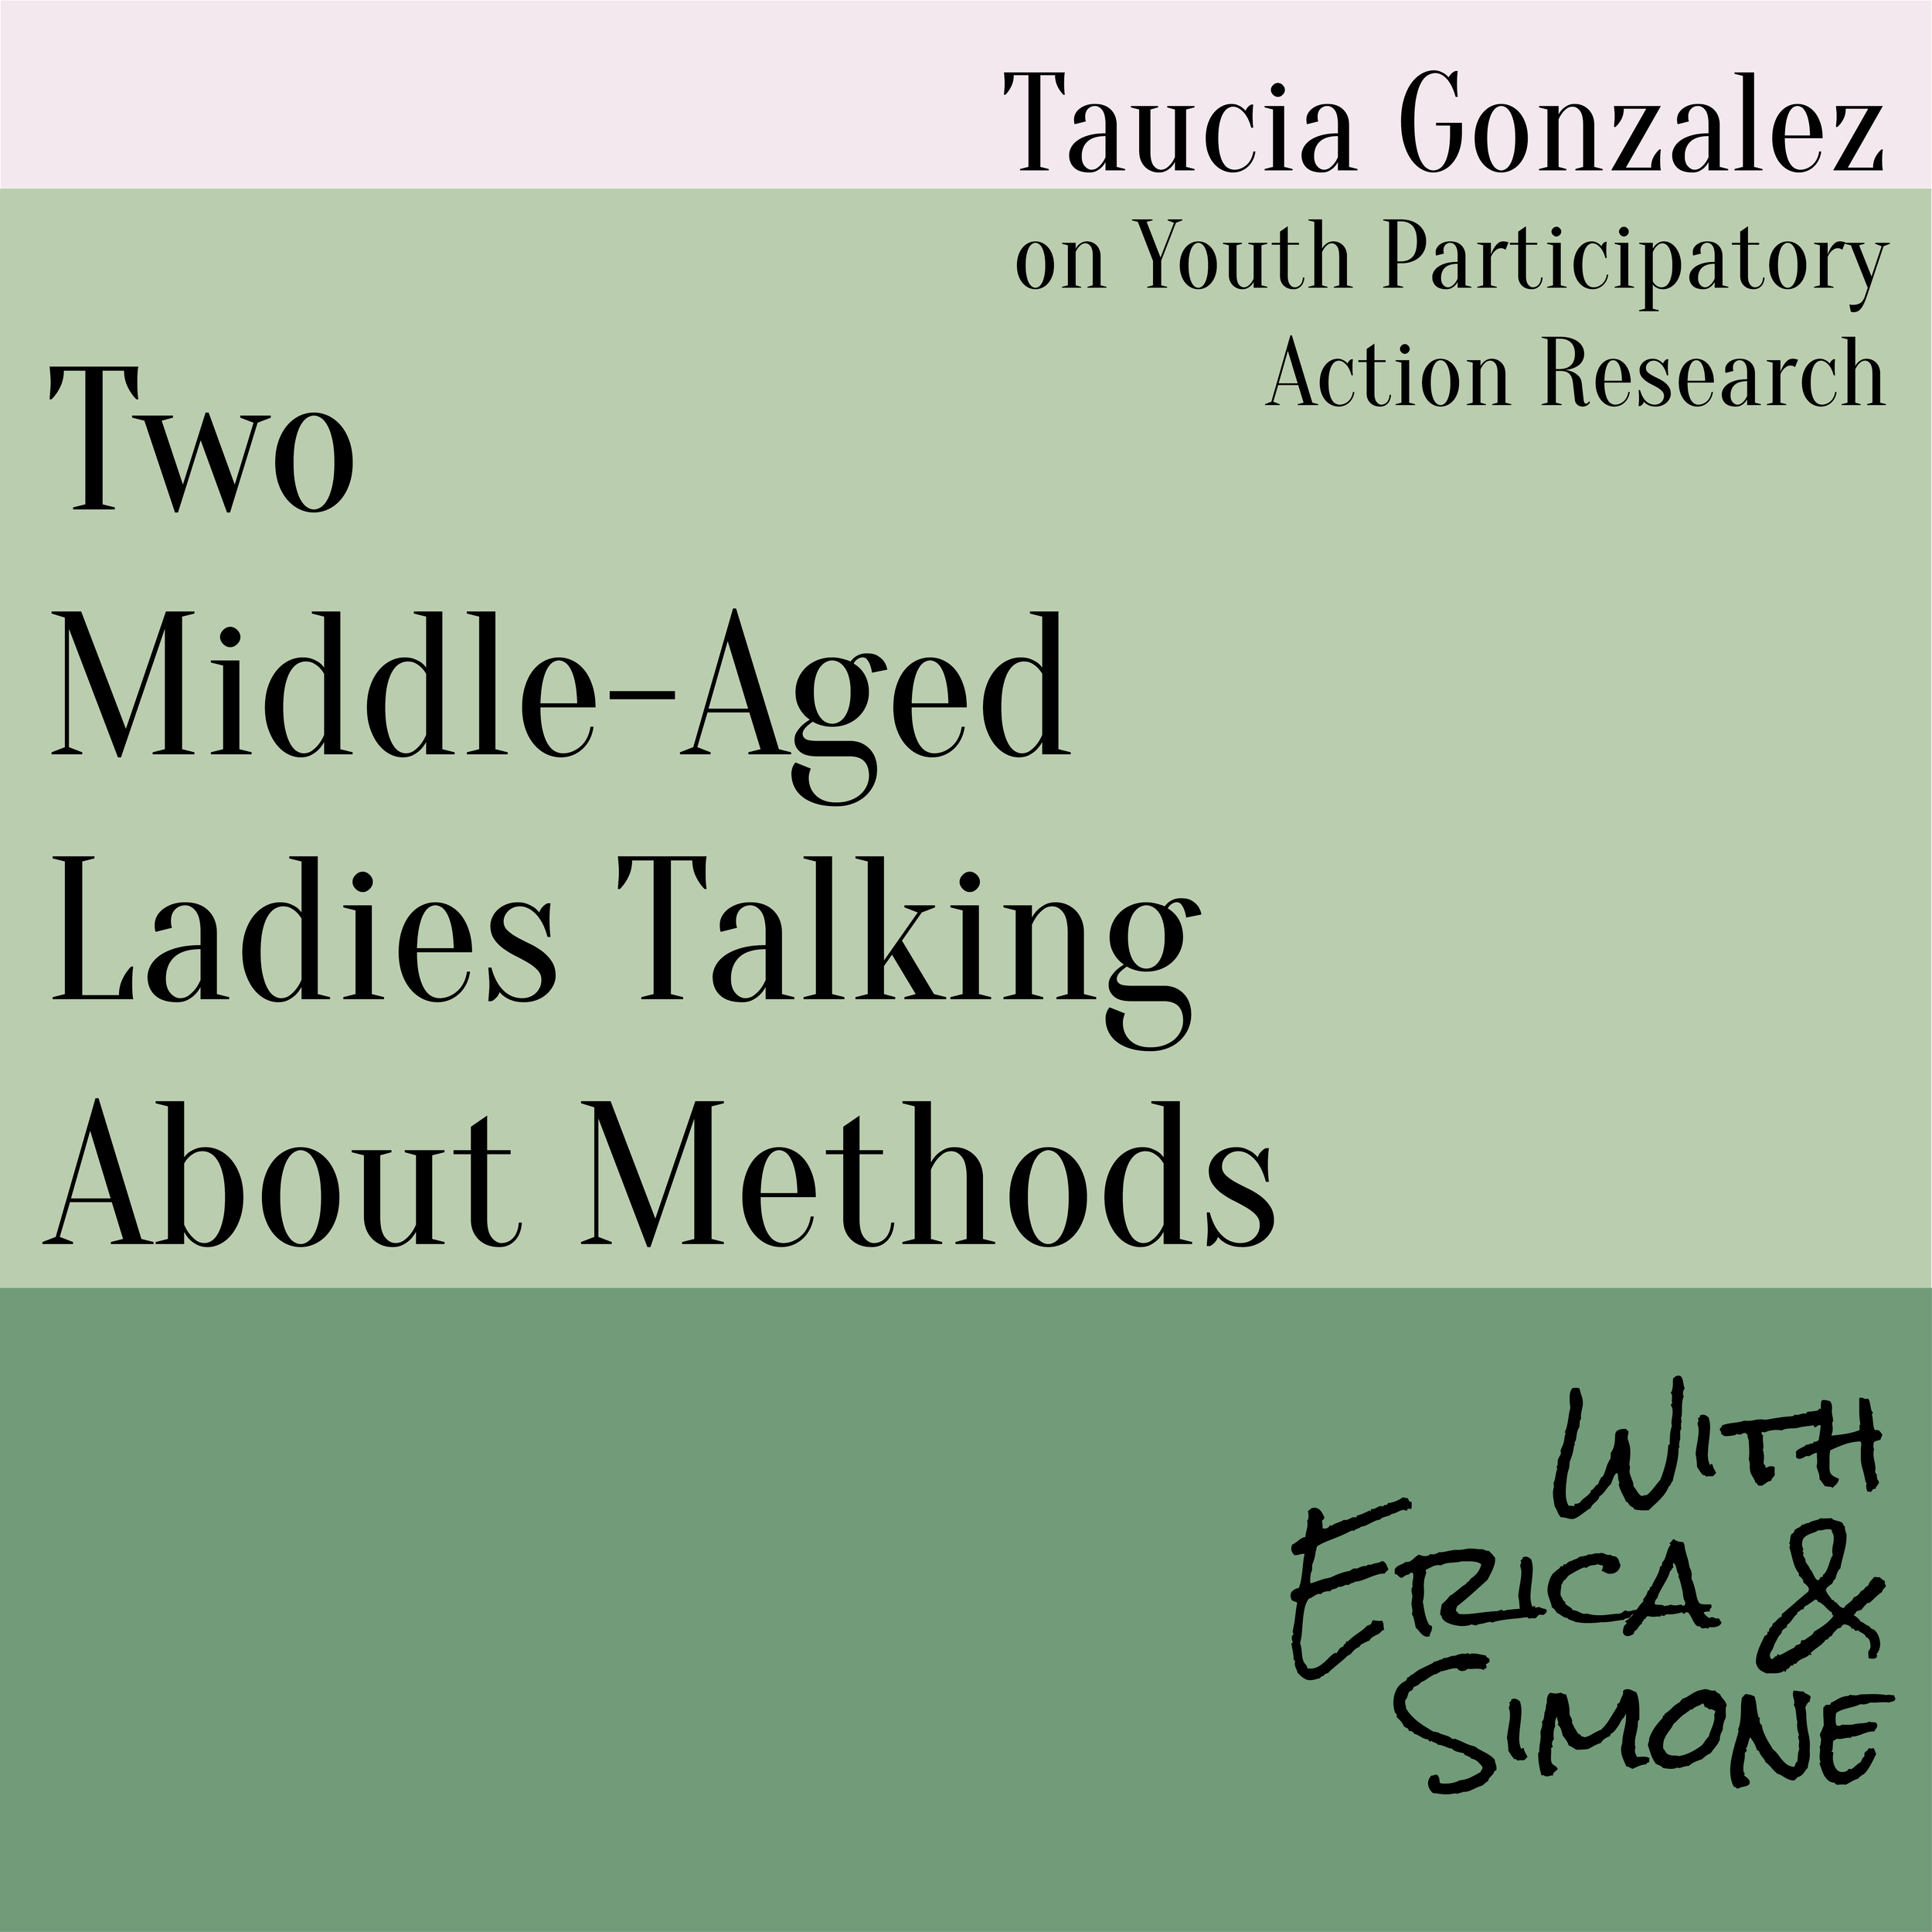 Taucia Gonzalez on Youth Participatory Action Research